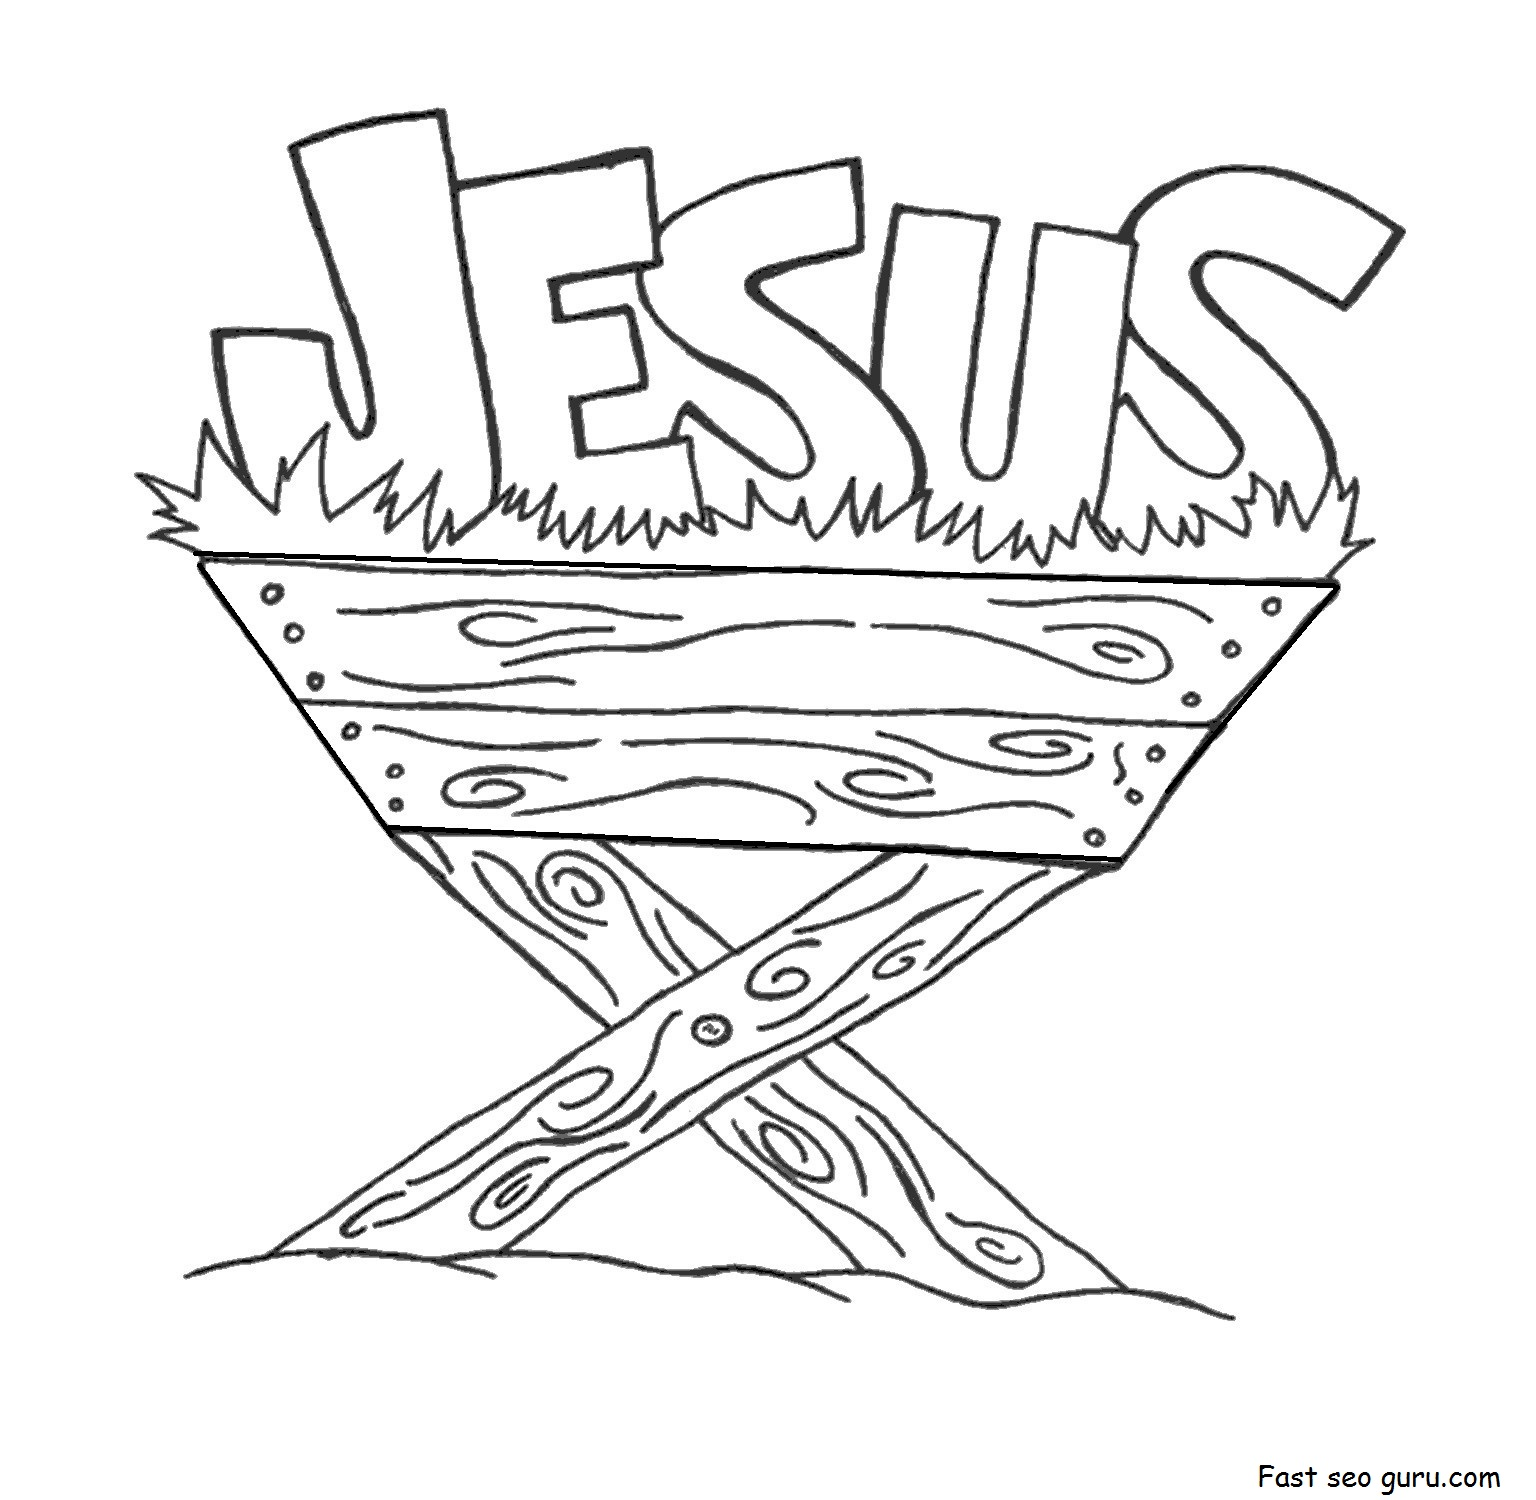 coloring pages for kids jesus print out jesus in the manger coloring pages printable for coloring pages jesus kids